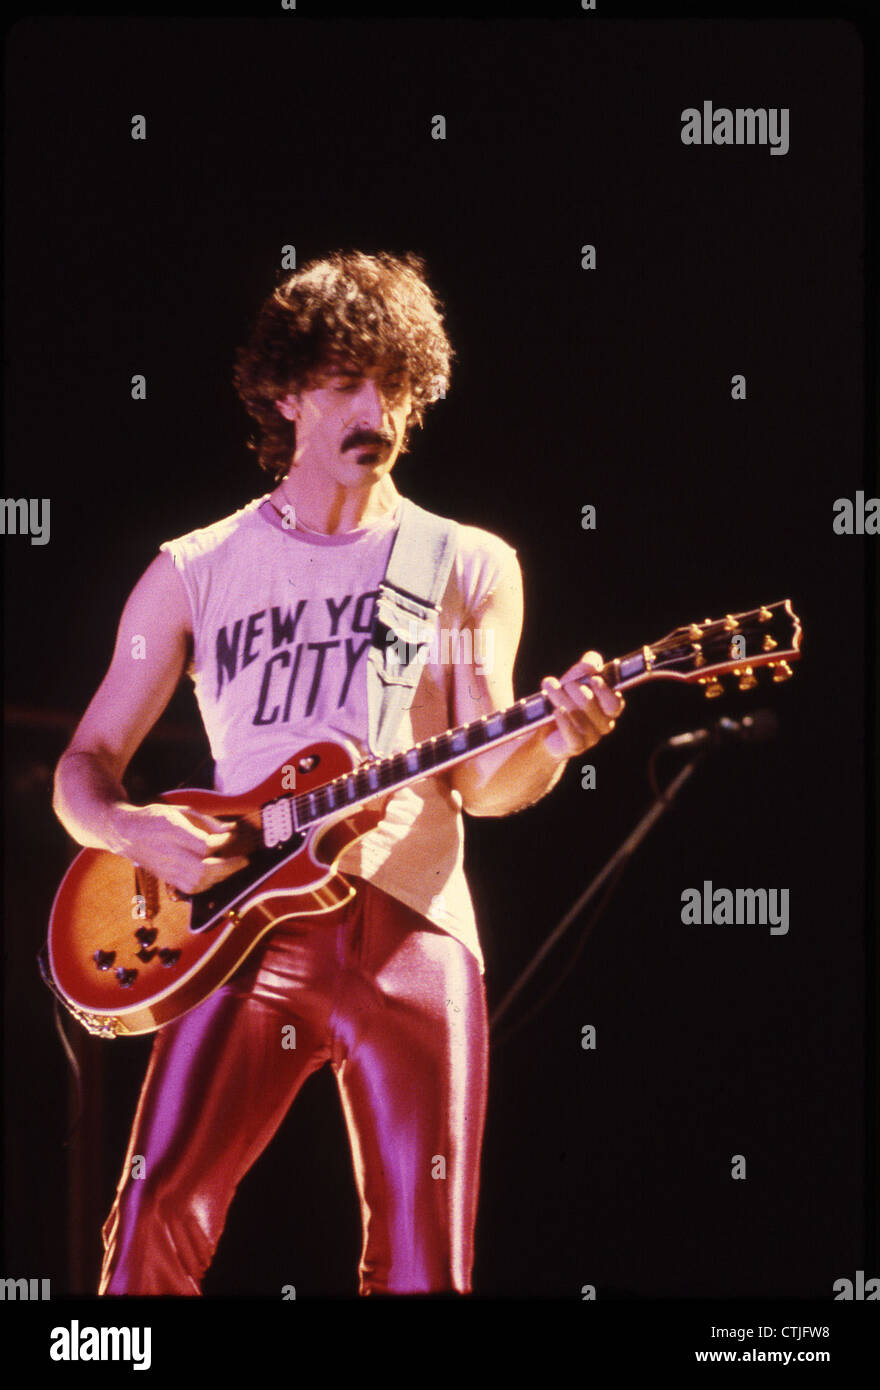 008331 - Frank Zappa in concert at Olympiahalle, Munich on 3rd July 1980 - Stock Image